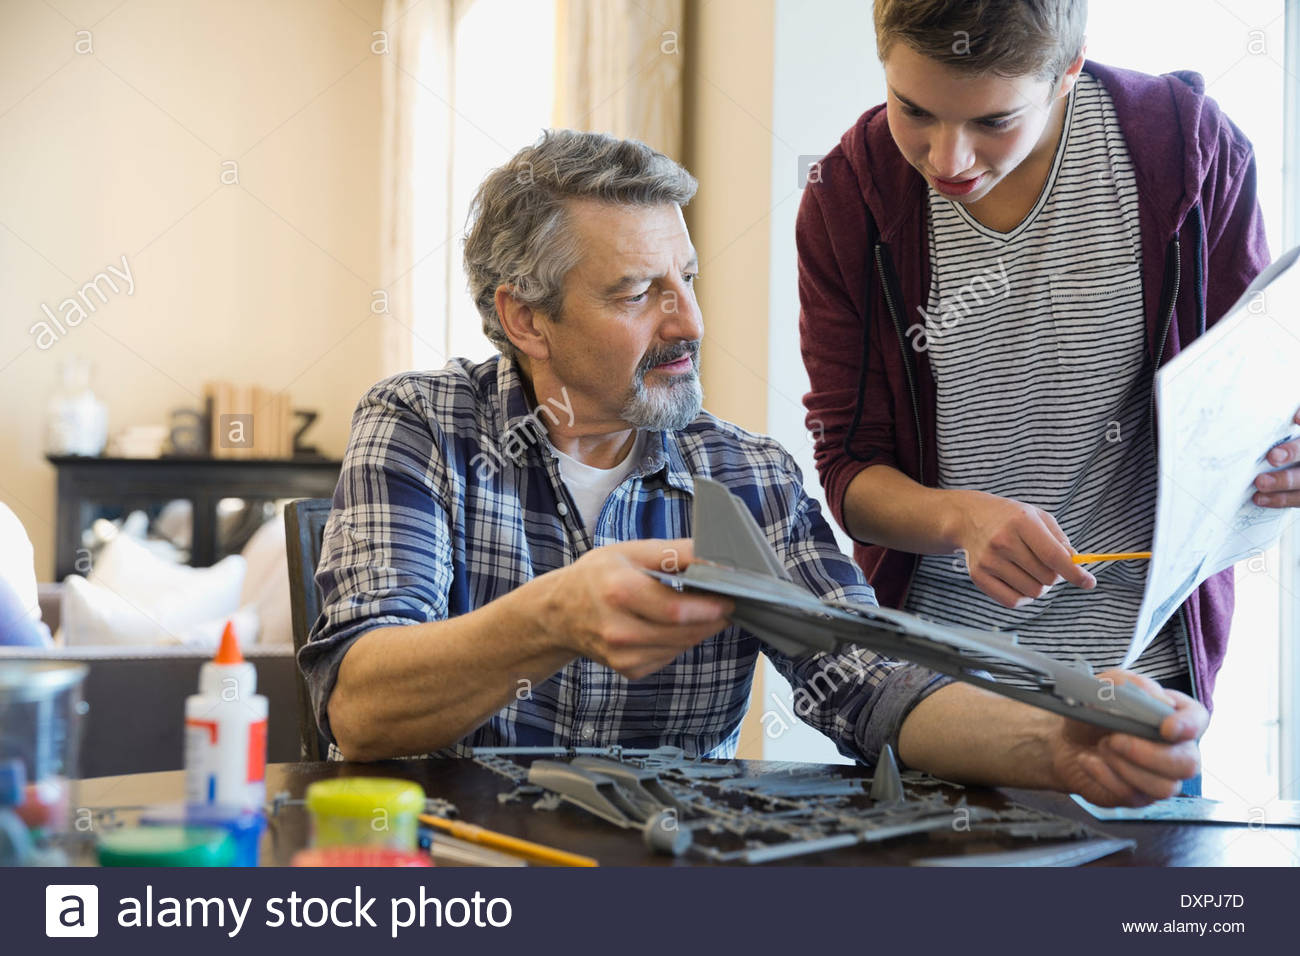 Grandson and grandfather building airplane model at home - Stock Image